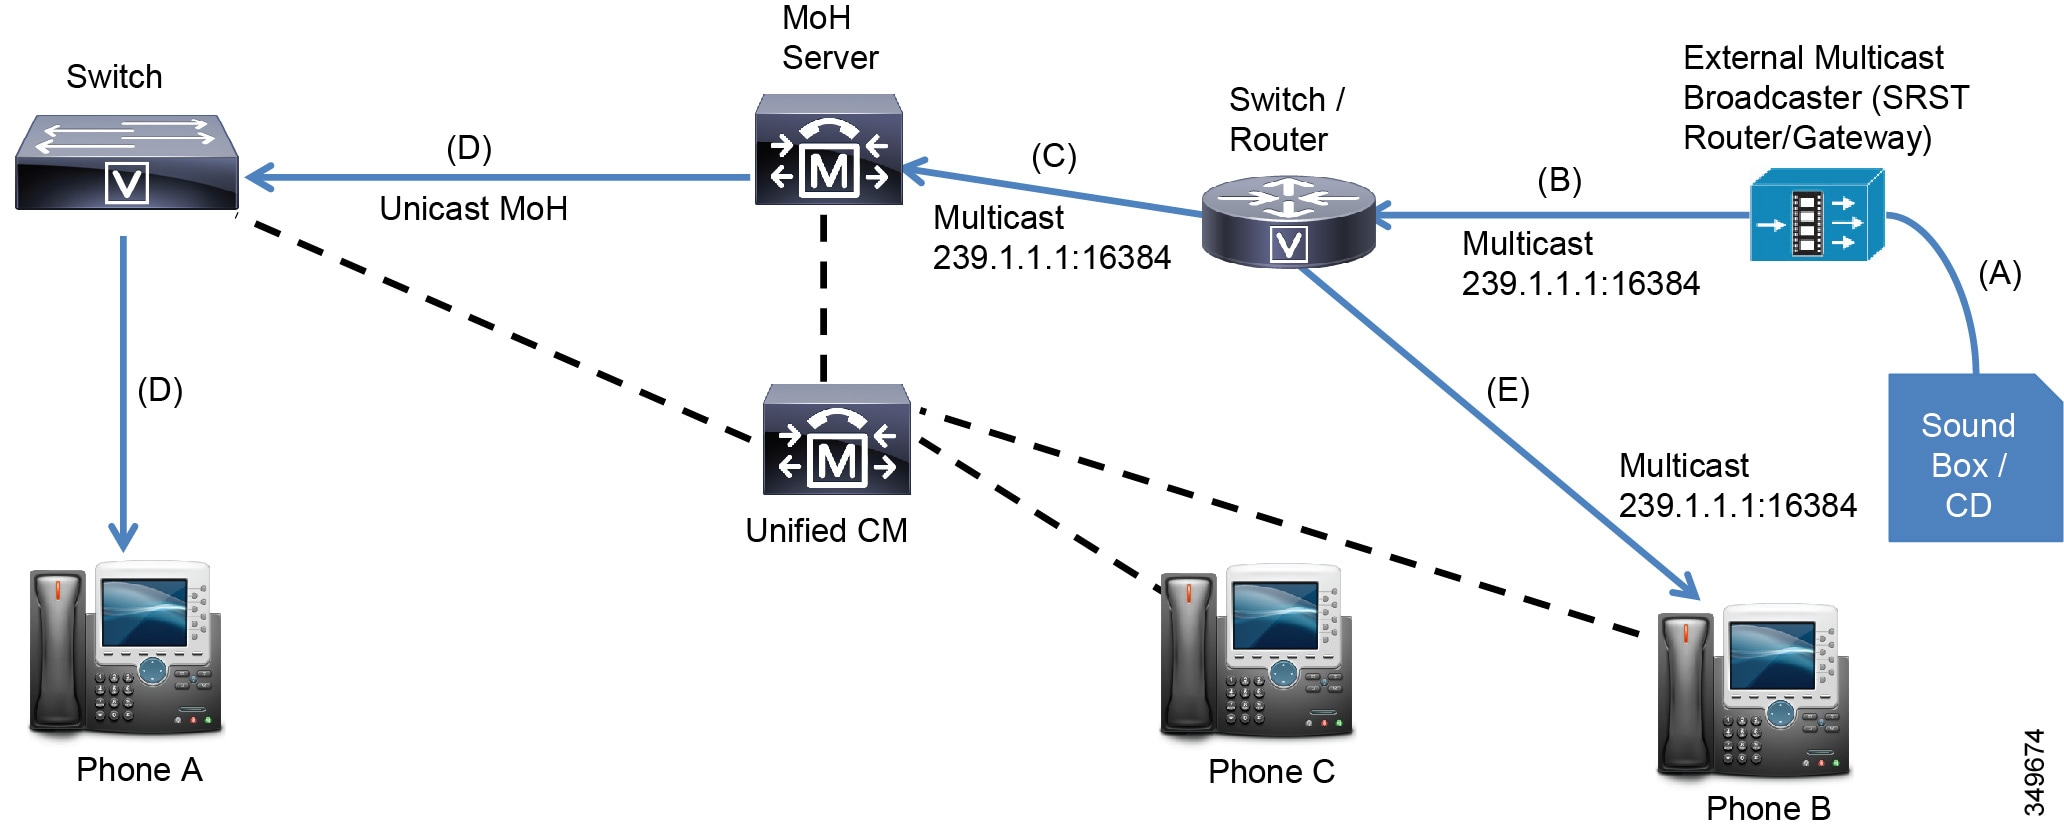 Cisco Collaboration System 11x Solution Reference Network Designs And Measure Current In Each Branch Repeat For Third Circuit Figure 7 6 Shows The Flow When Using External Multicast Moh Sources As Shown Music Source Is Connected A To Srst Routers Em Port